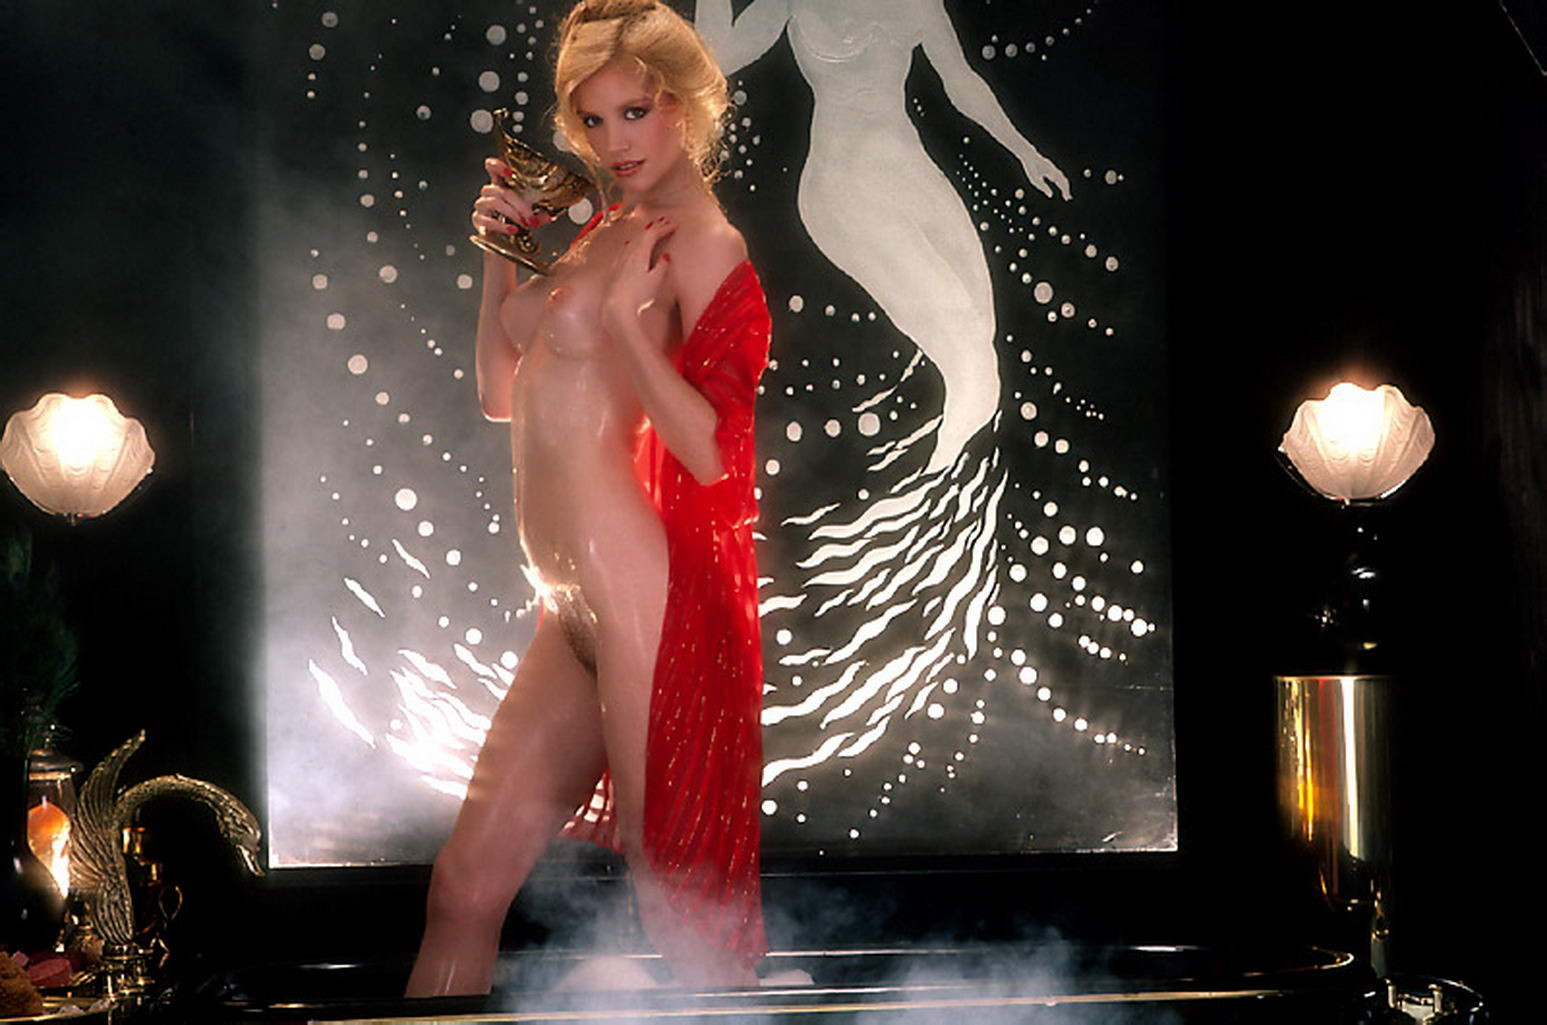 Has Shannon Tweed Ever Done Hardcore